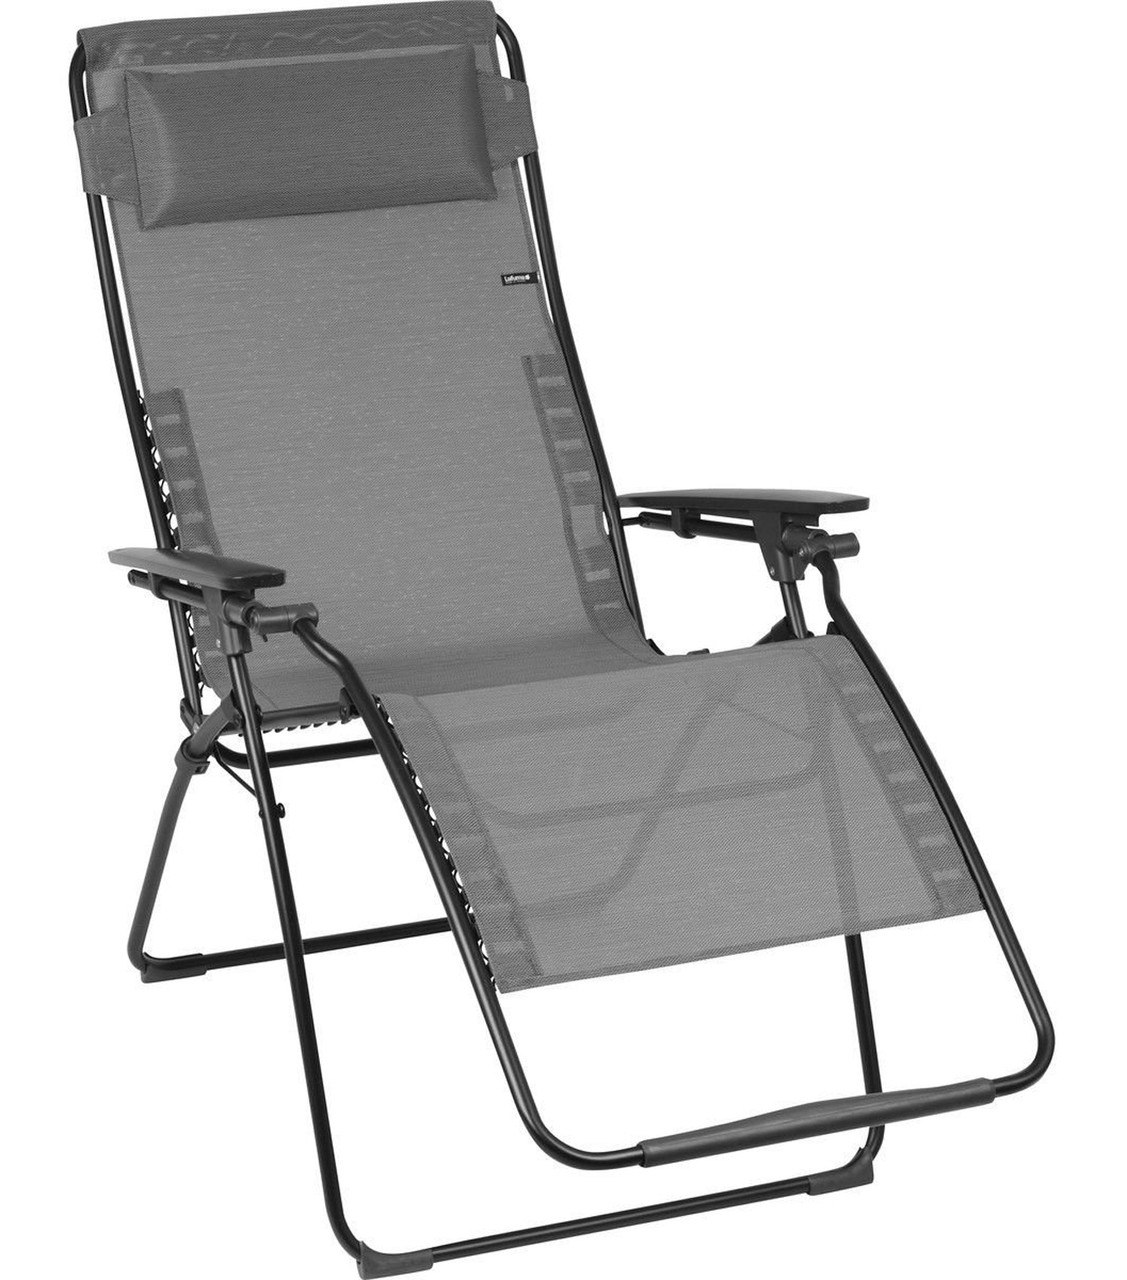 Lafuma Futura XL Zero Gravity Relaxation Chair, Graphite | Healthy Posture  Store